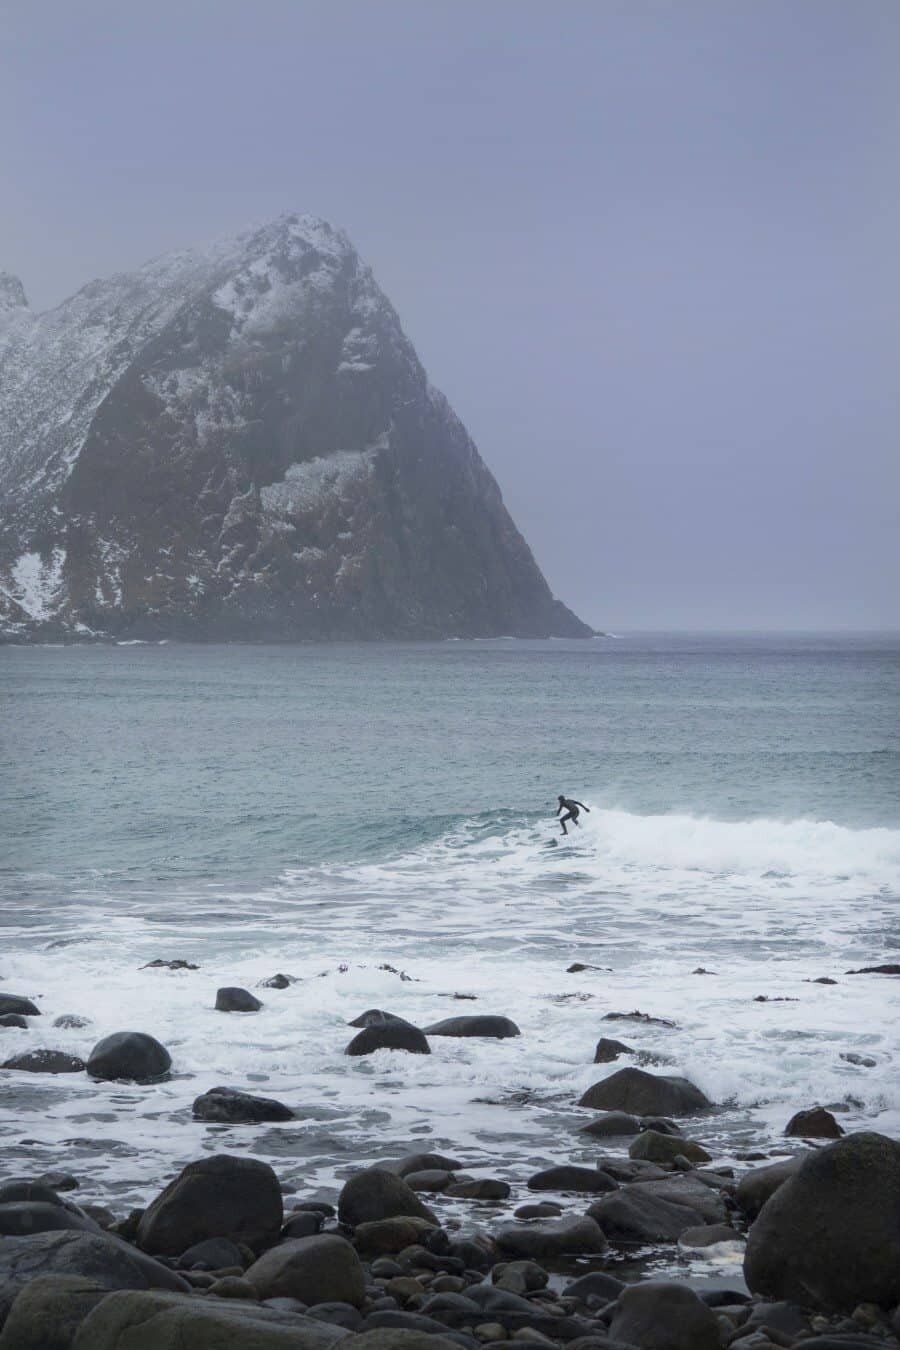 Lofoten Islands Photography Locations - Your Guide to the Best Spots